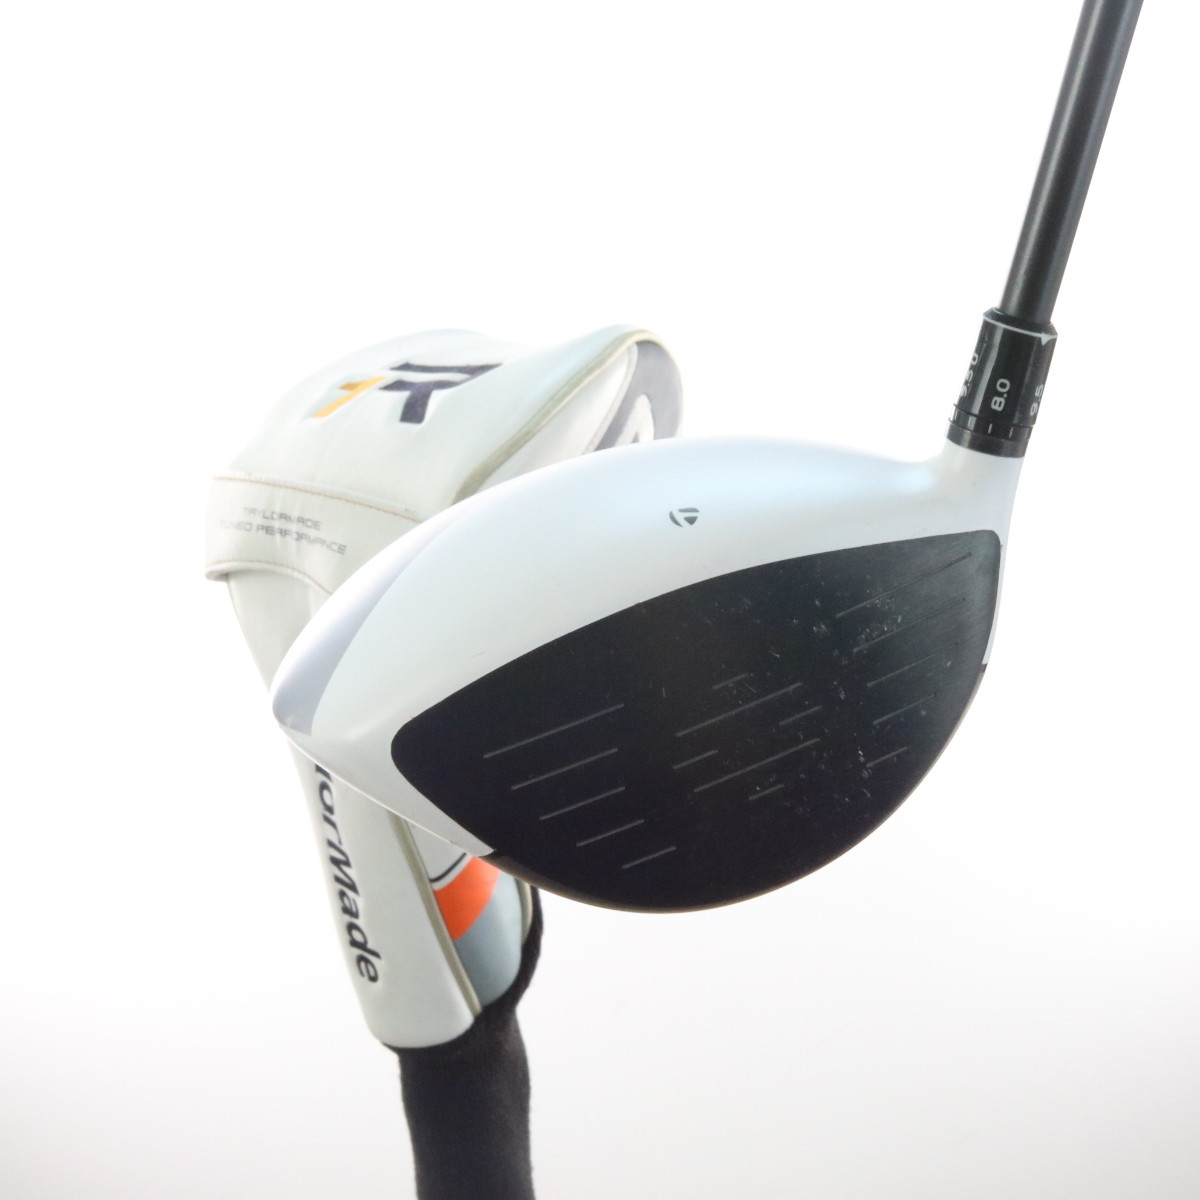 Taylormade R1 Driver >> Taylormade R1 Driver Rip Phenom Regular Flex Right Handed Headcover